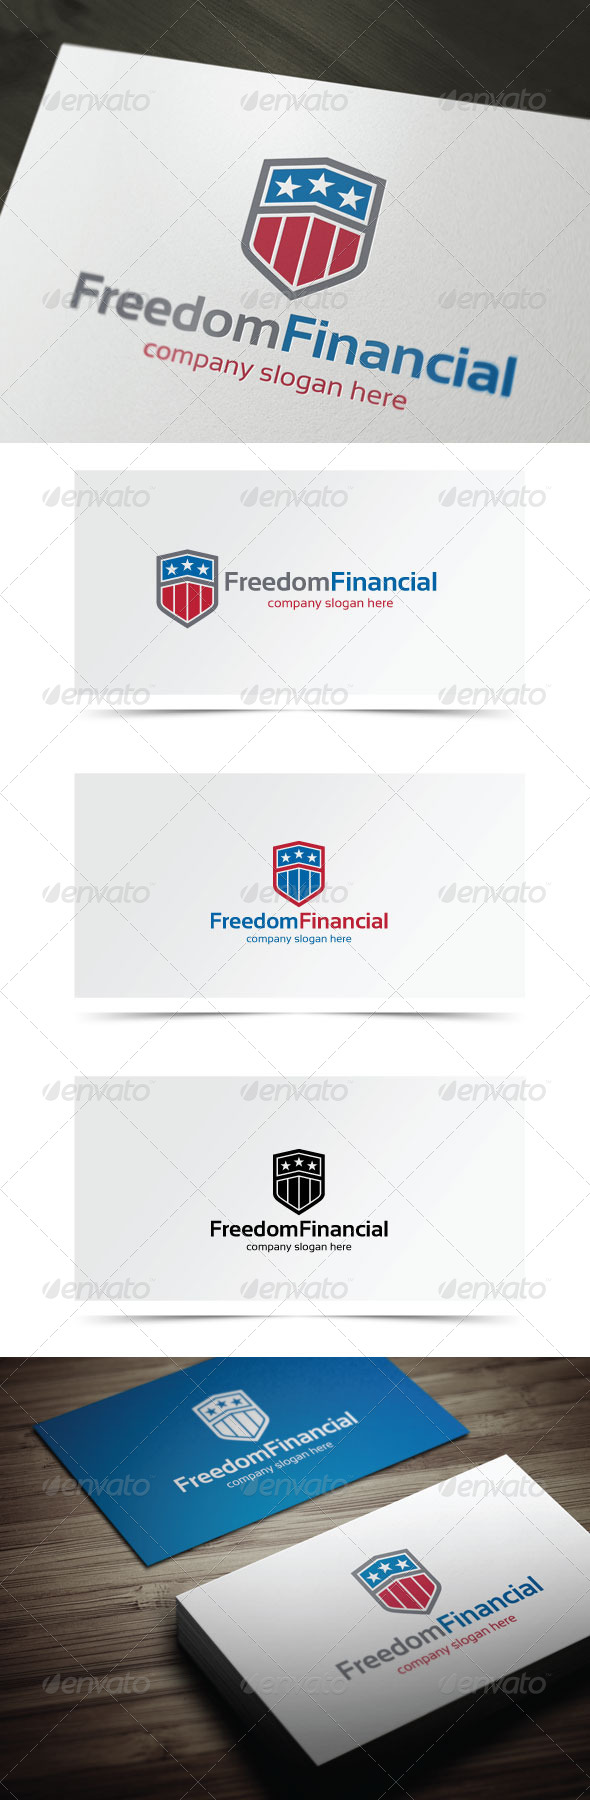 GraphicRiver Freedom Financial 6547054